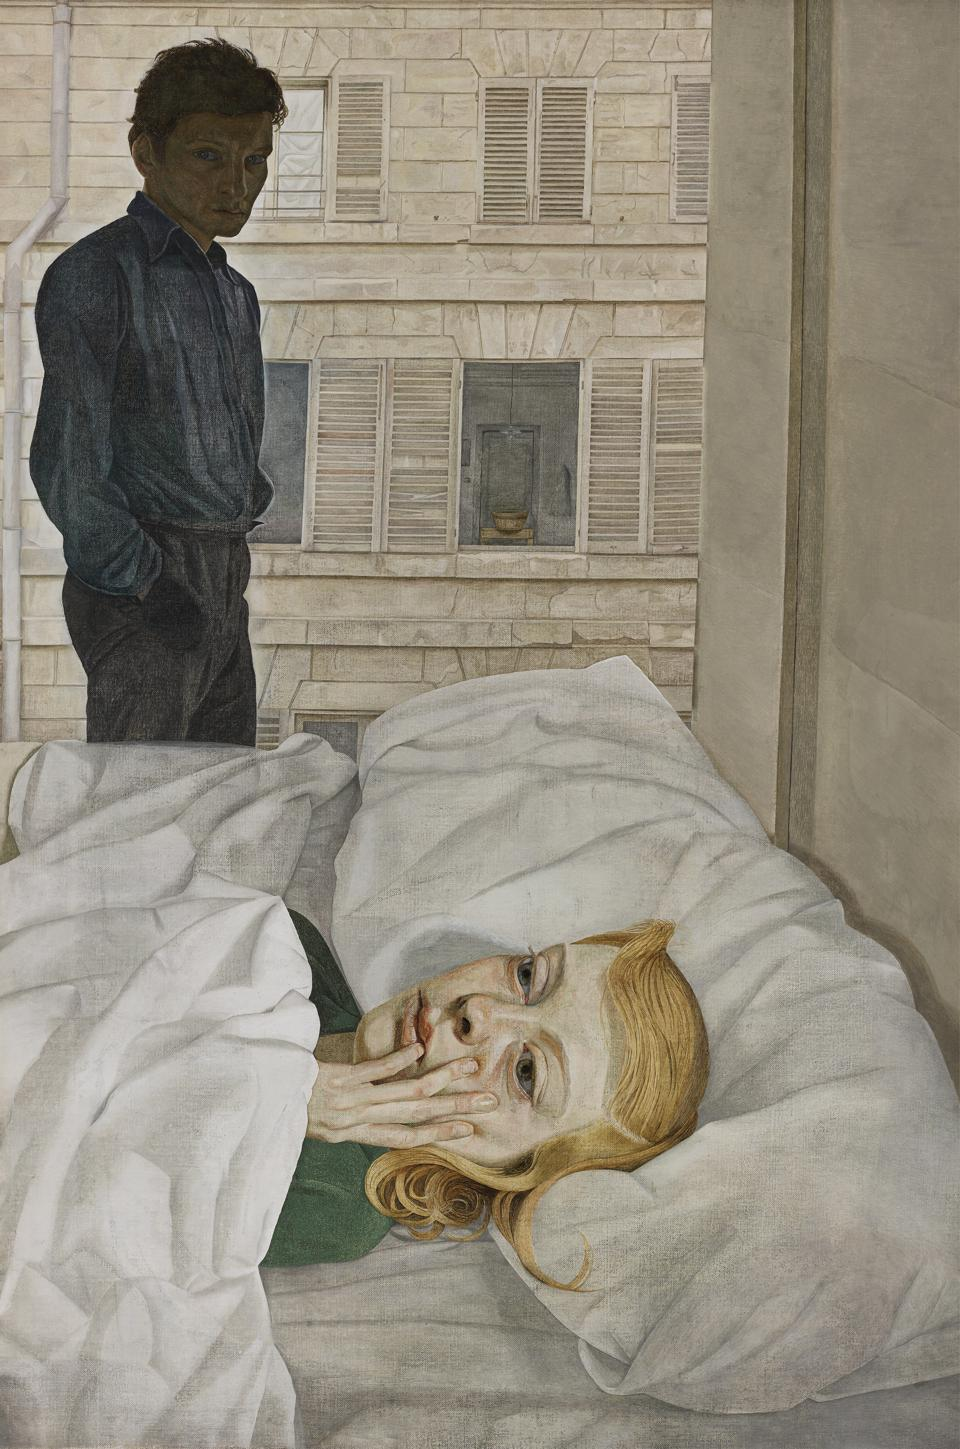 A Rare Look At Lucian Freud's Self-Portraits Casts Light And Shadows On His Evolution As Modern Master